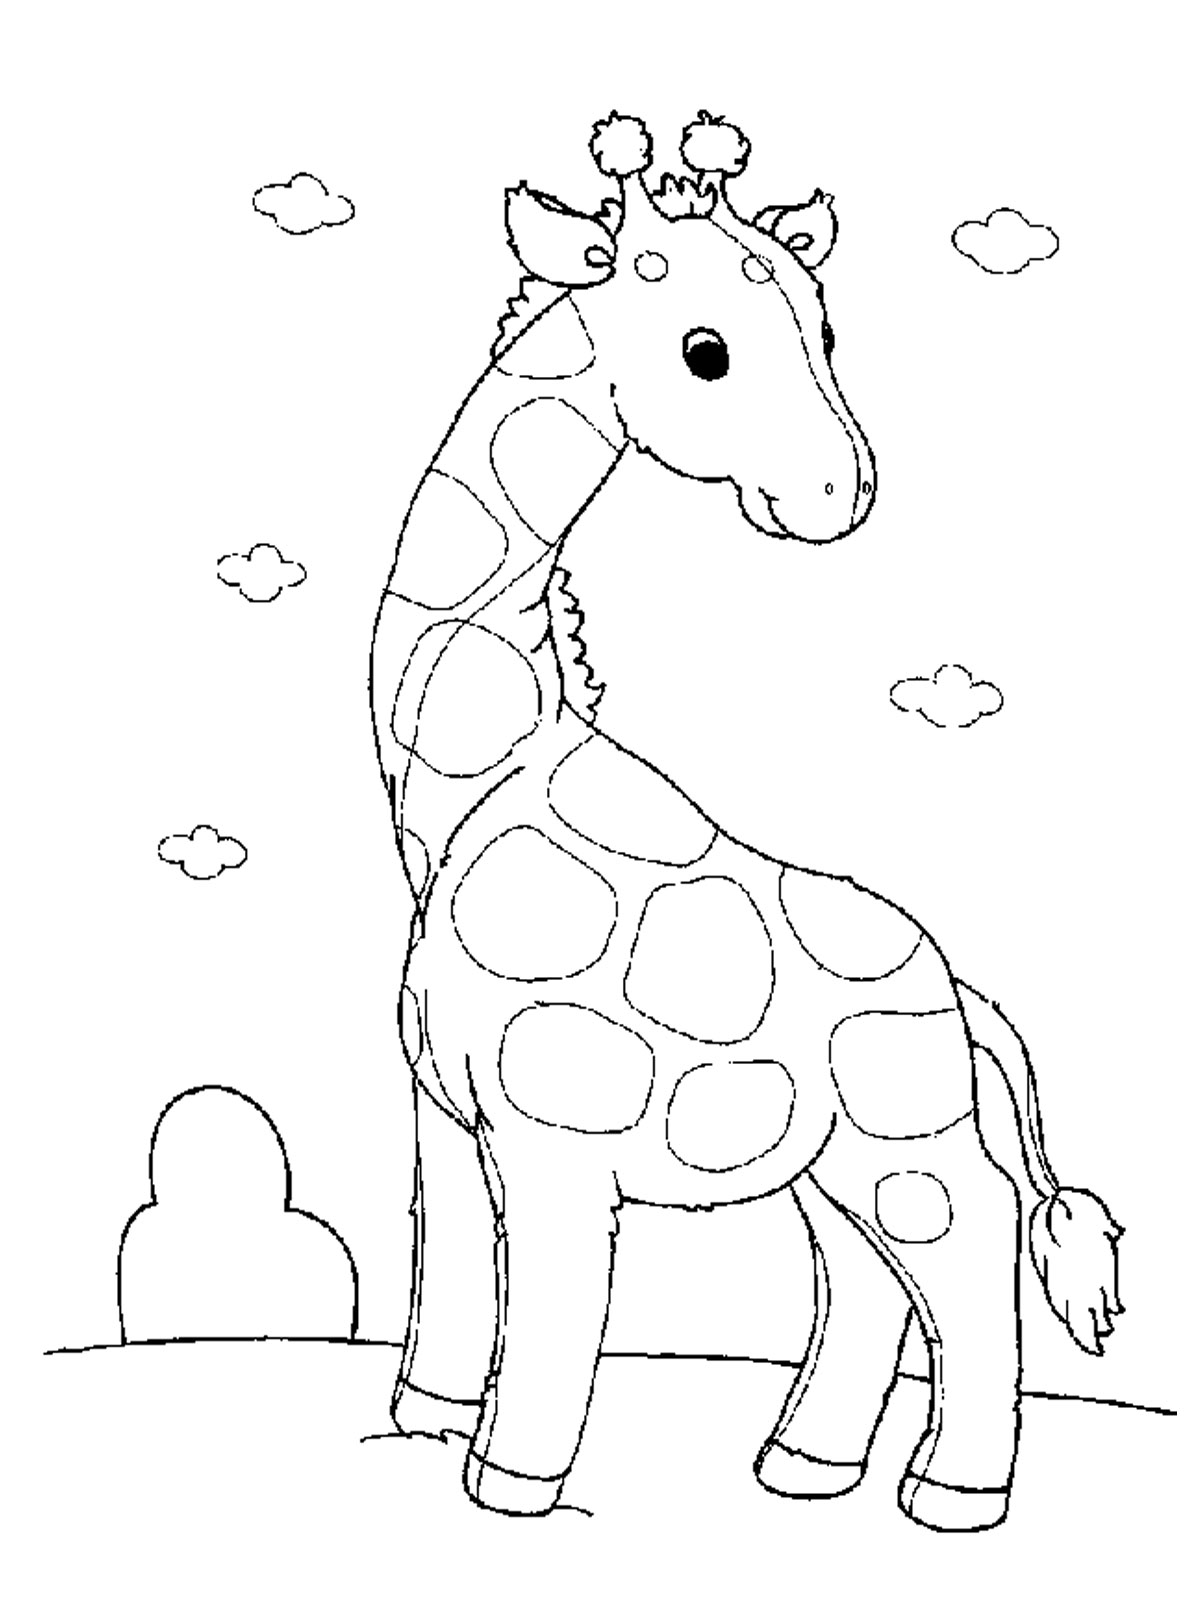 coloring pages animals free - free printable giraffe coloring pages for kids